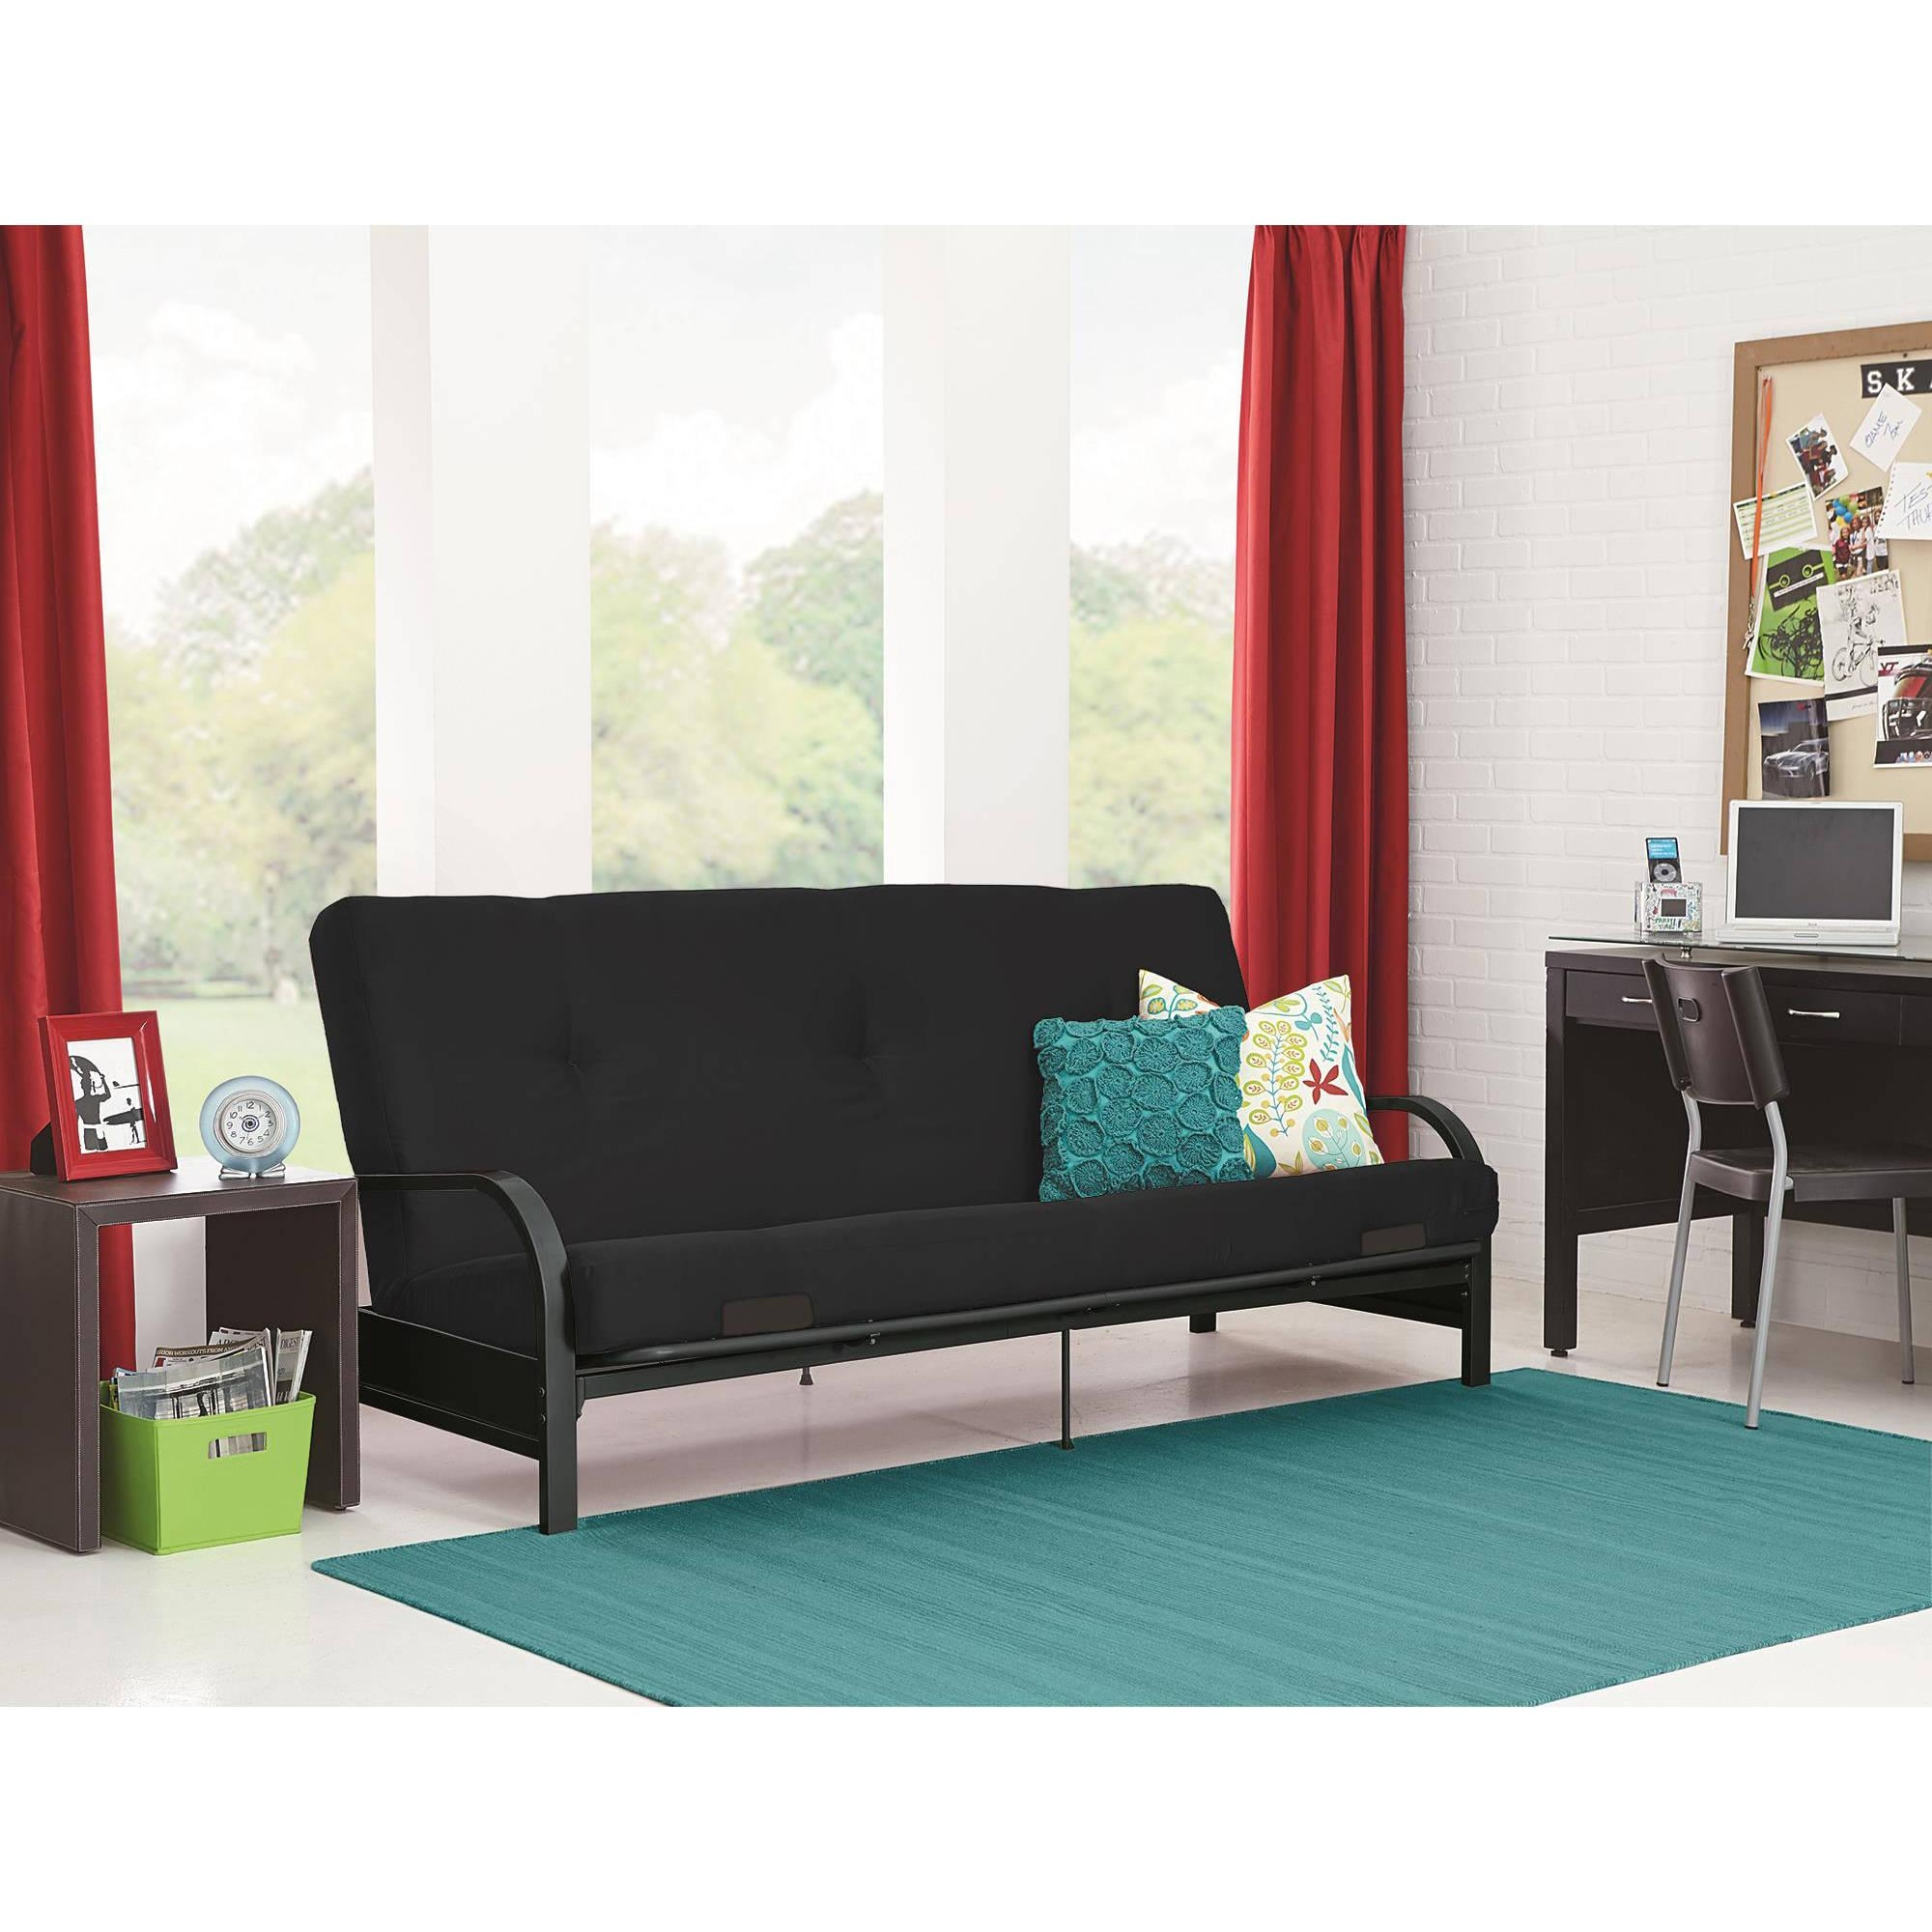 Decor: Using Beautiful Target Couch Covers For Pretty Furniture Intended For Target Couch Beds (Image 2 of 20)